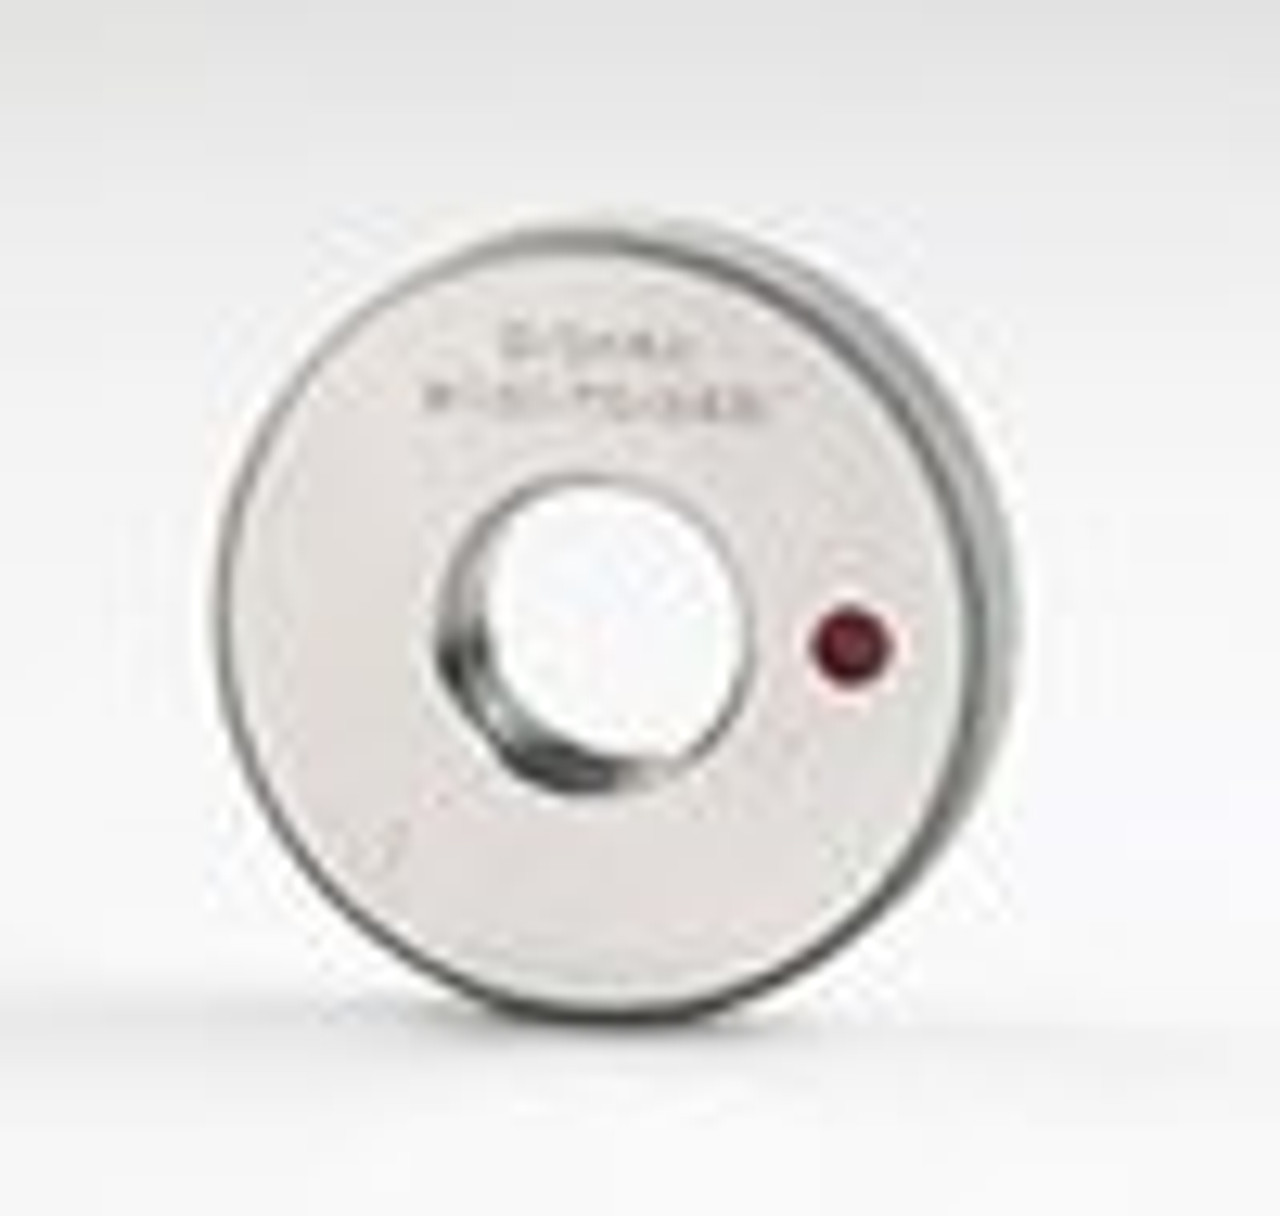 "BSF 1-1/4"" - 9 NO GO Thread Ring Gauge - (BSF1-1/4RG-NG)"